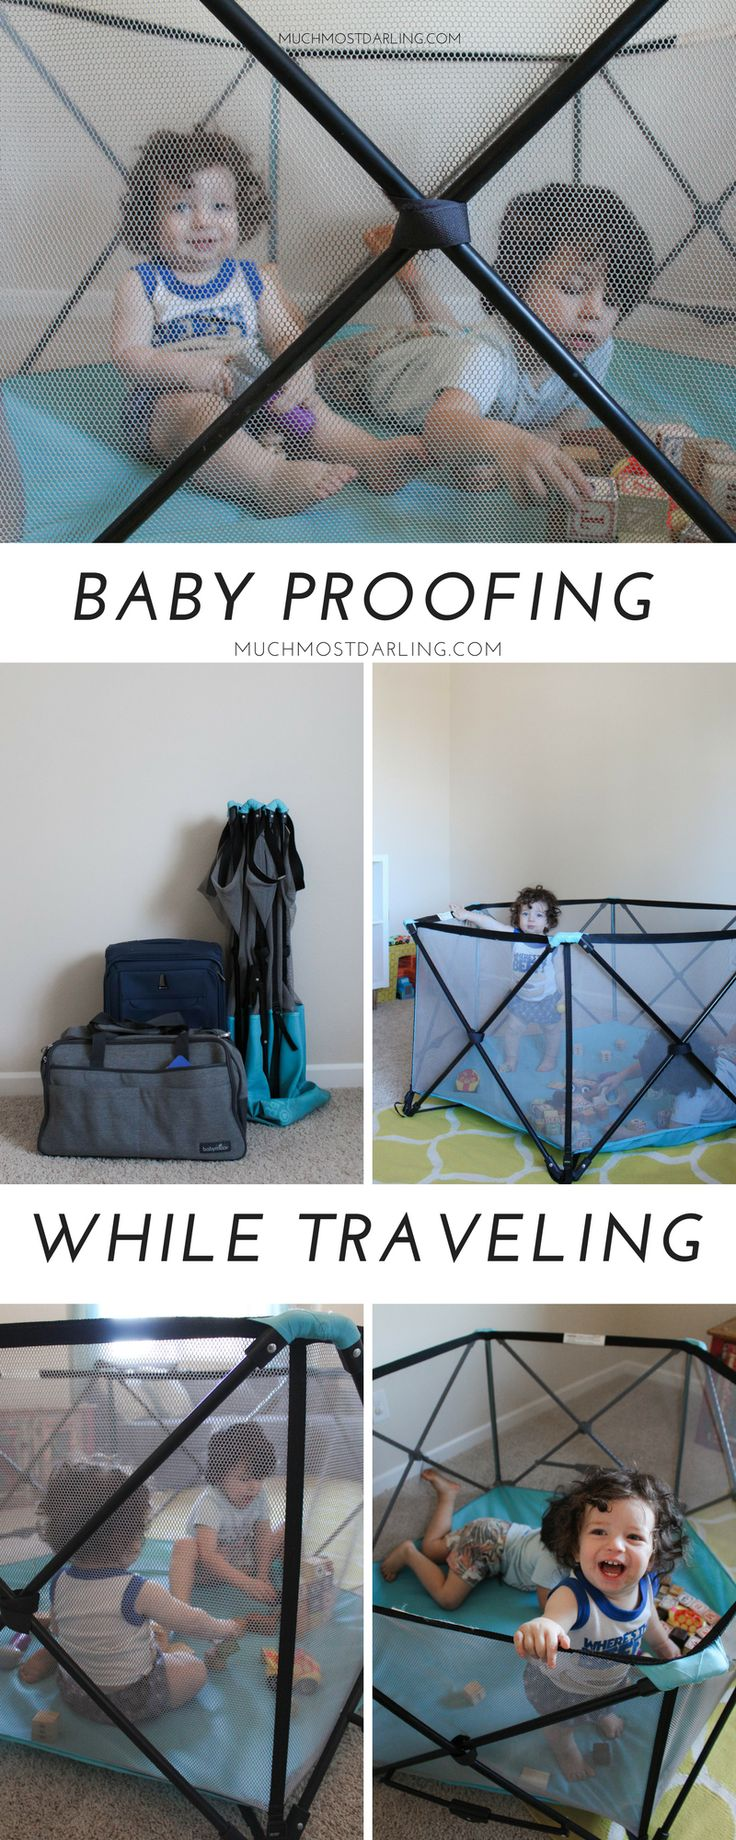 Our family practically lives on the road. Come learn how we baby proof while traveling and on the go with our Regalo My Play Portable Play Yard!